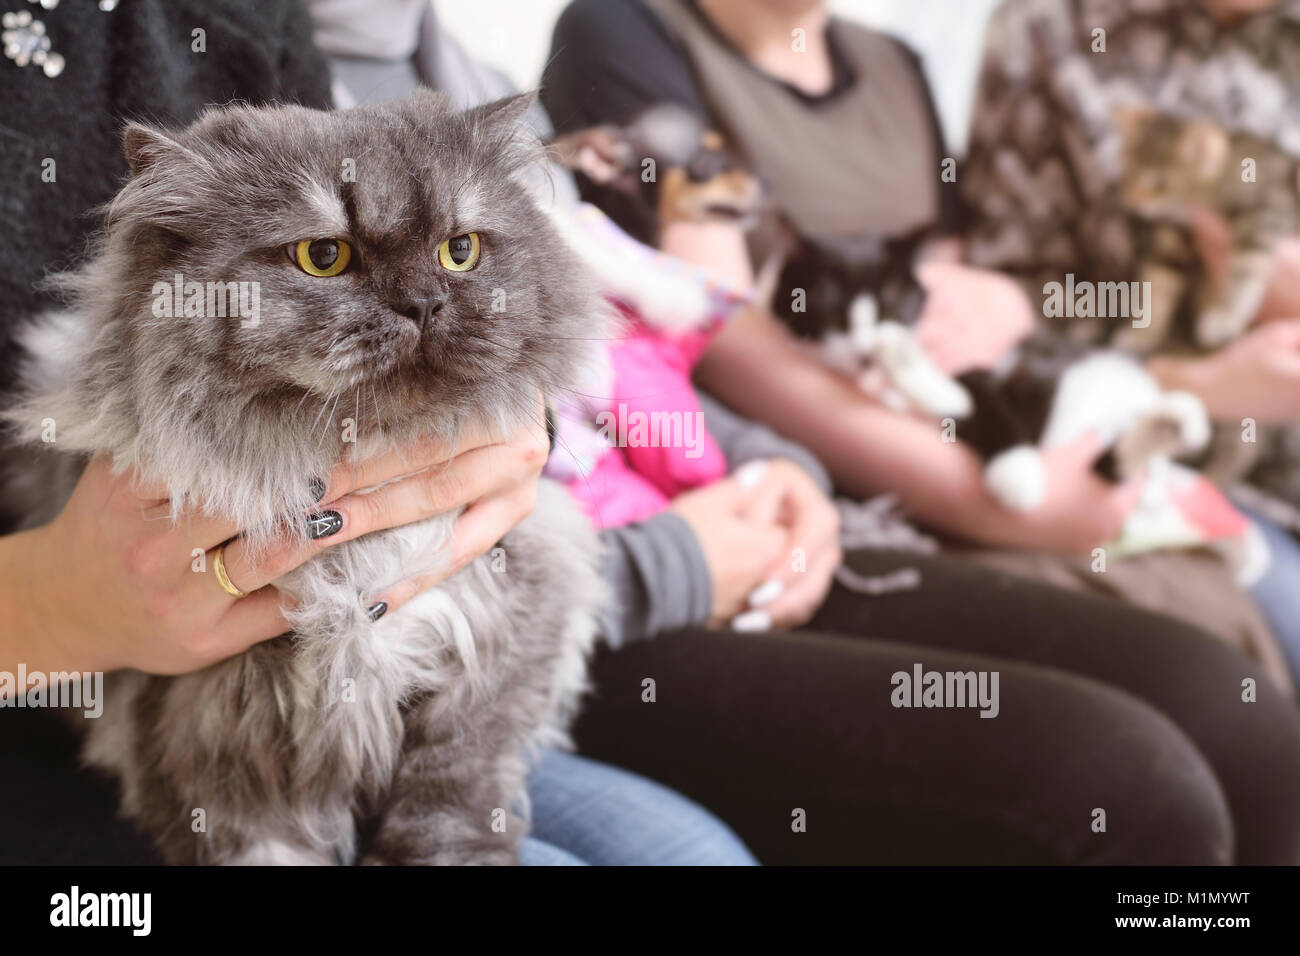 Persian cat  in the hands of the owner in the queue for examination in the veterinary clinic - Stock Image